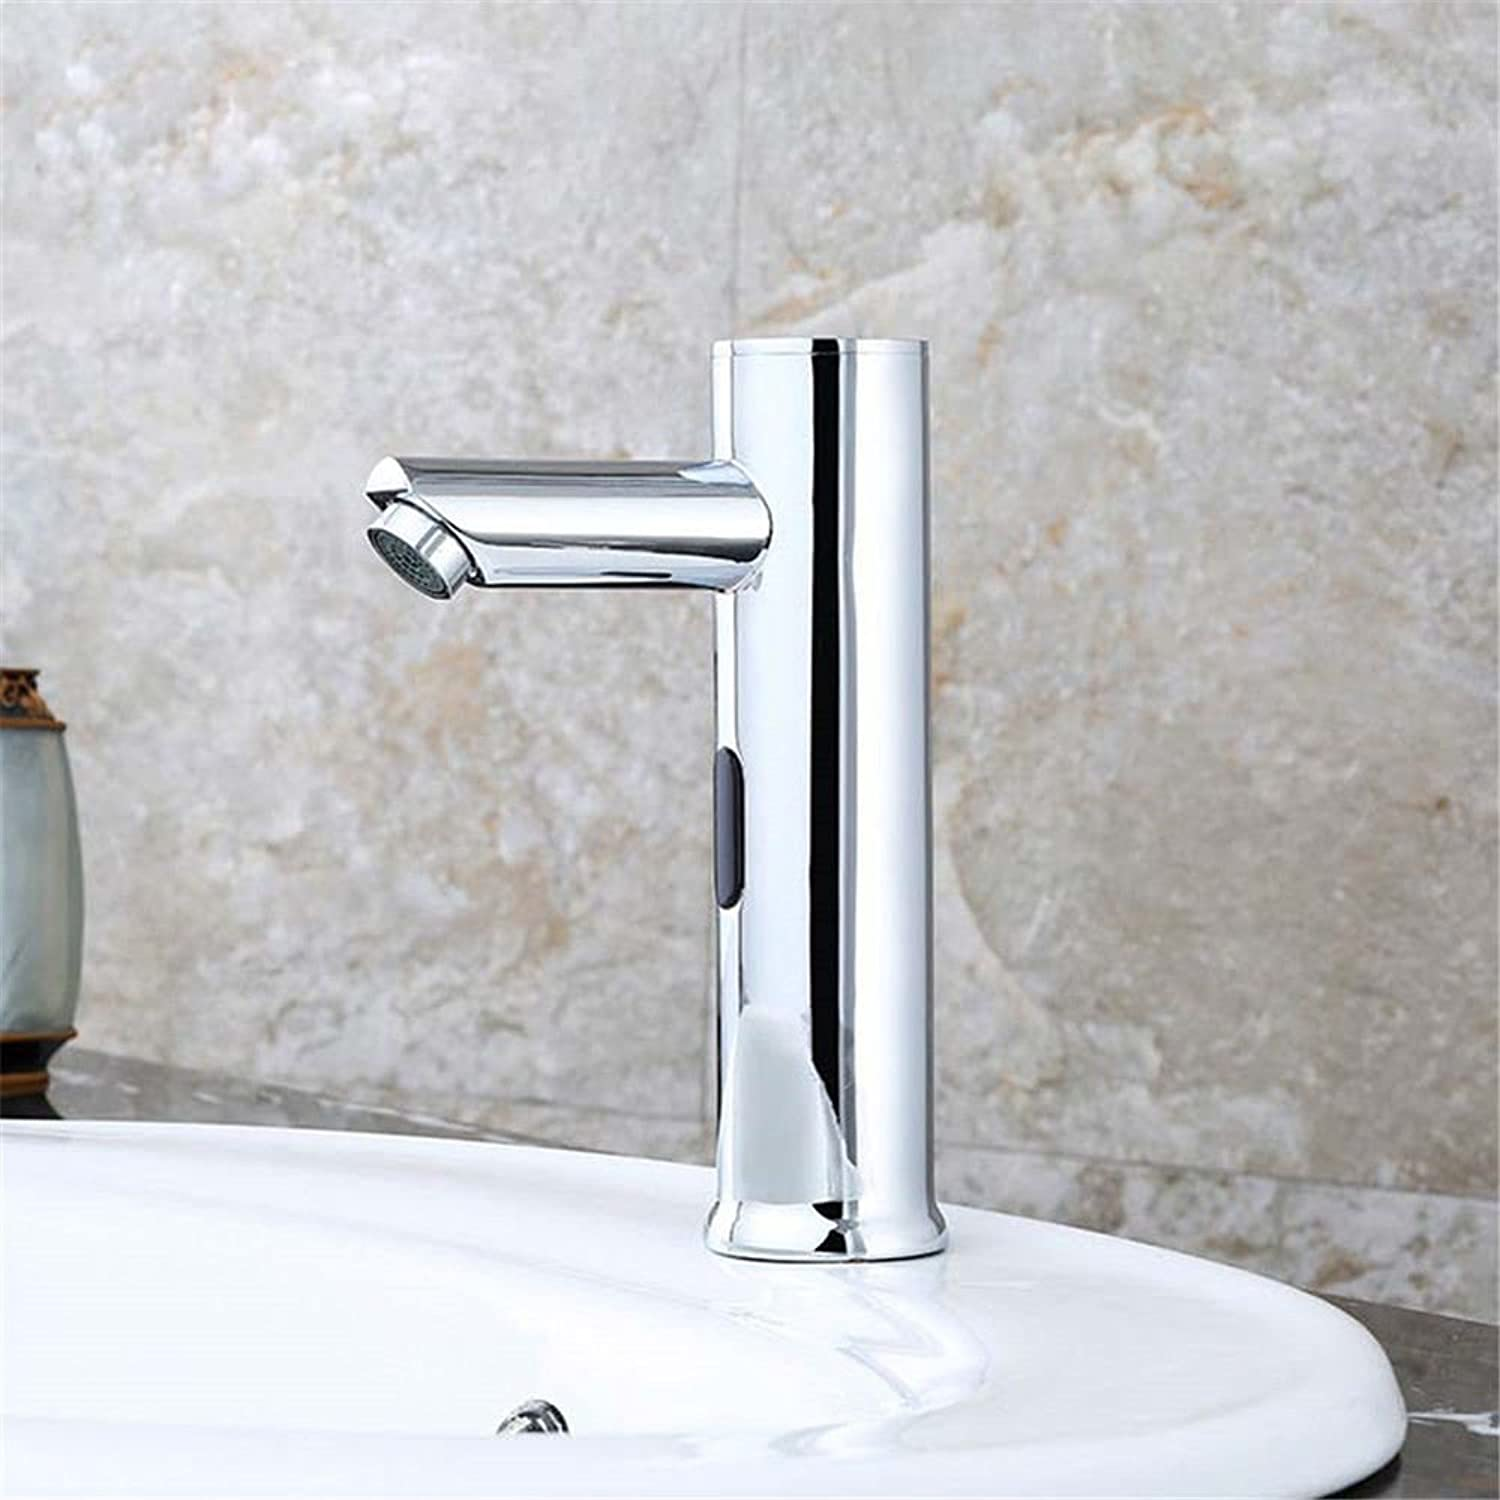 Lalaky Taps Faucet Kitchen Mixer Sink Waterfall Bathroom Mixer Basin Mixer Tap for Kitchen Bathroom and Washroom Copper Intelligent Induction Infrared Cooler